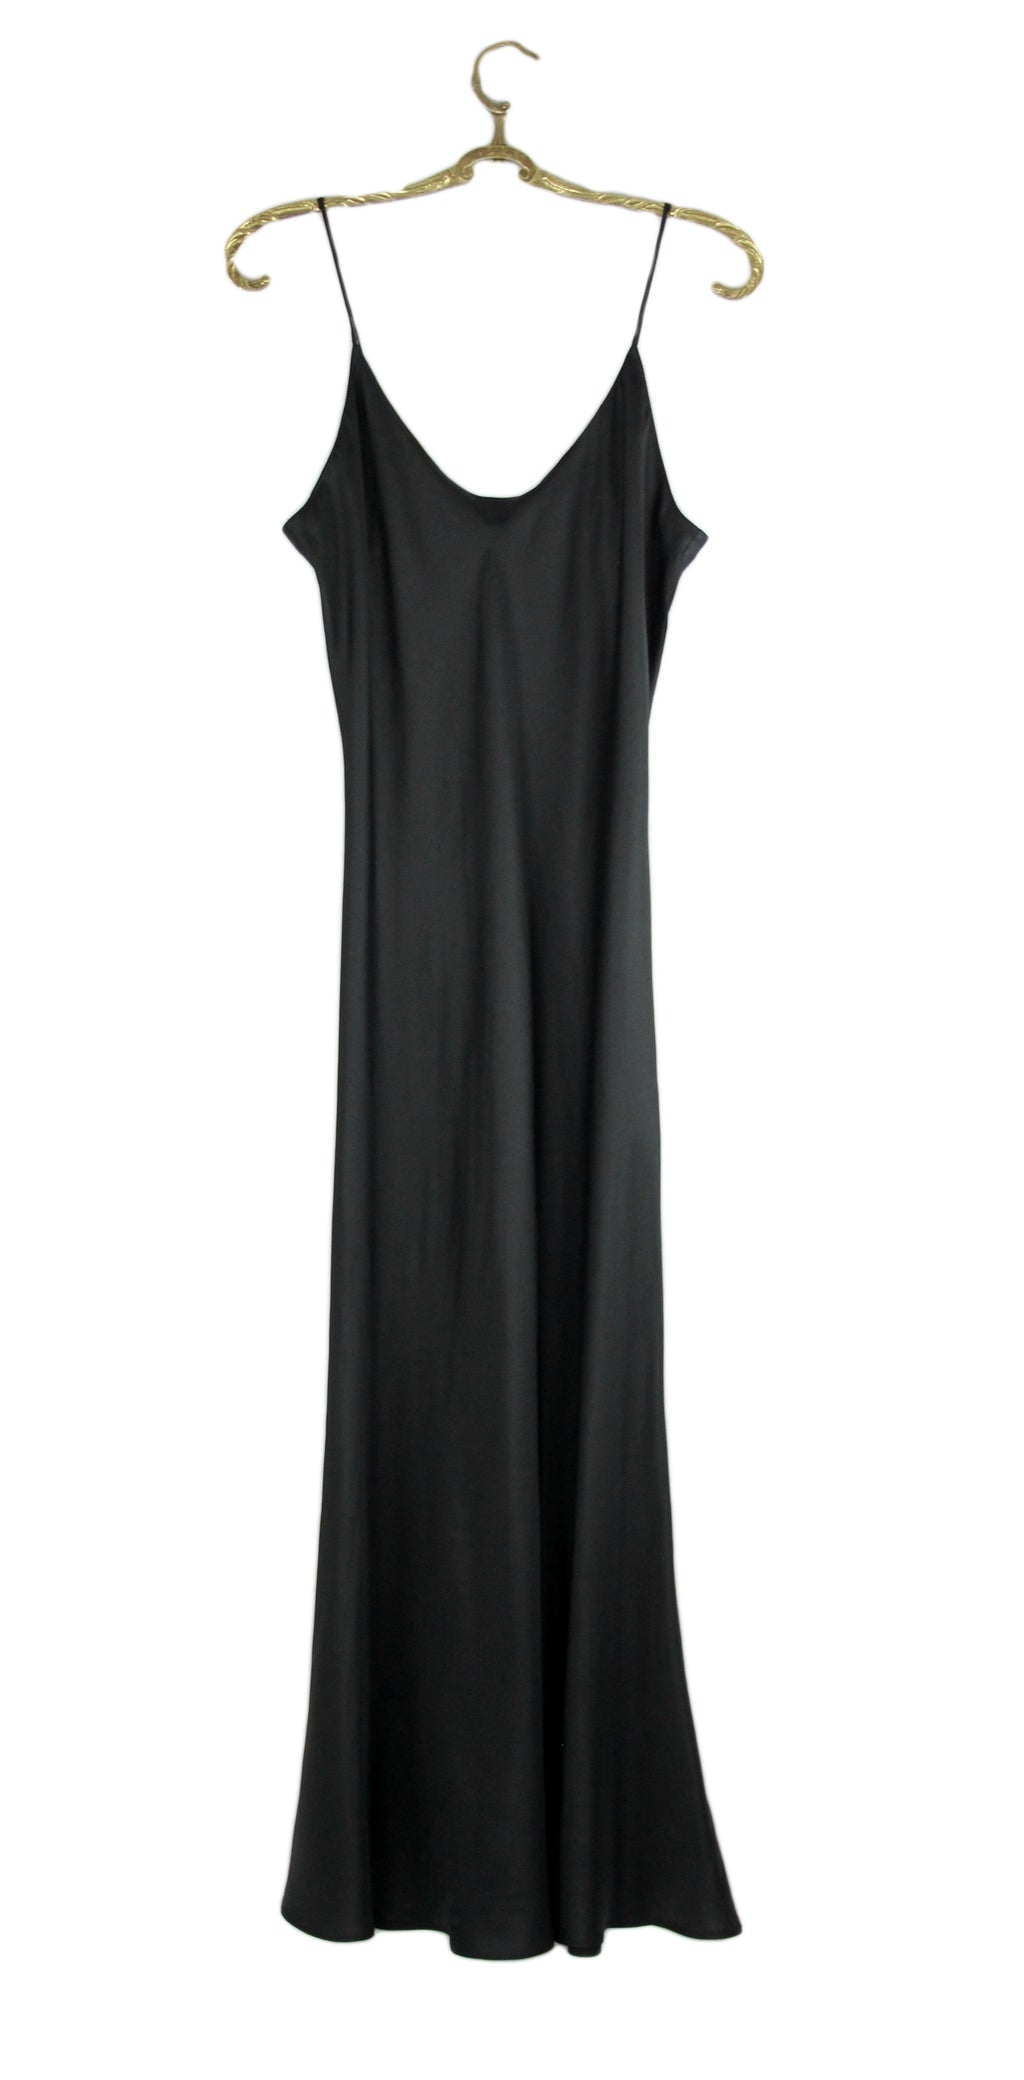 Sportmax by Max Mara Matte Black Satin Slip Dress SIZE S